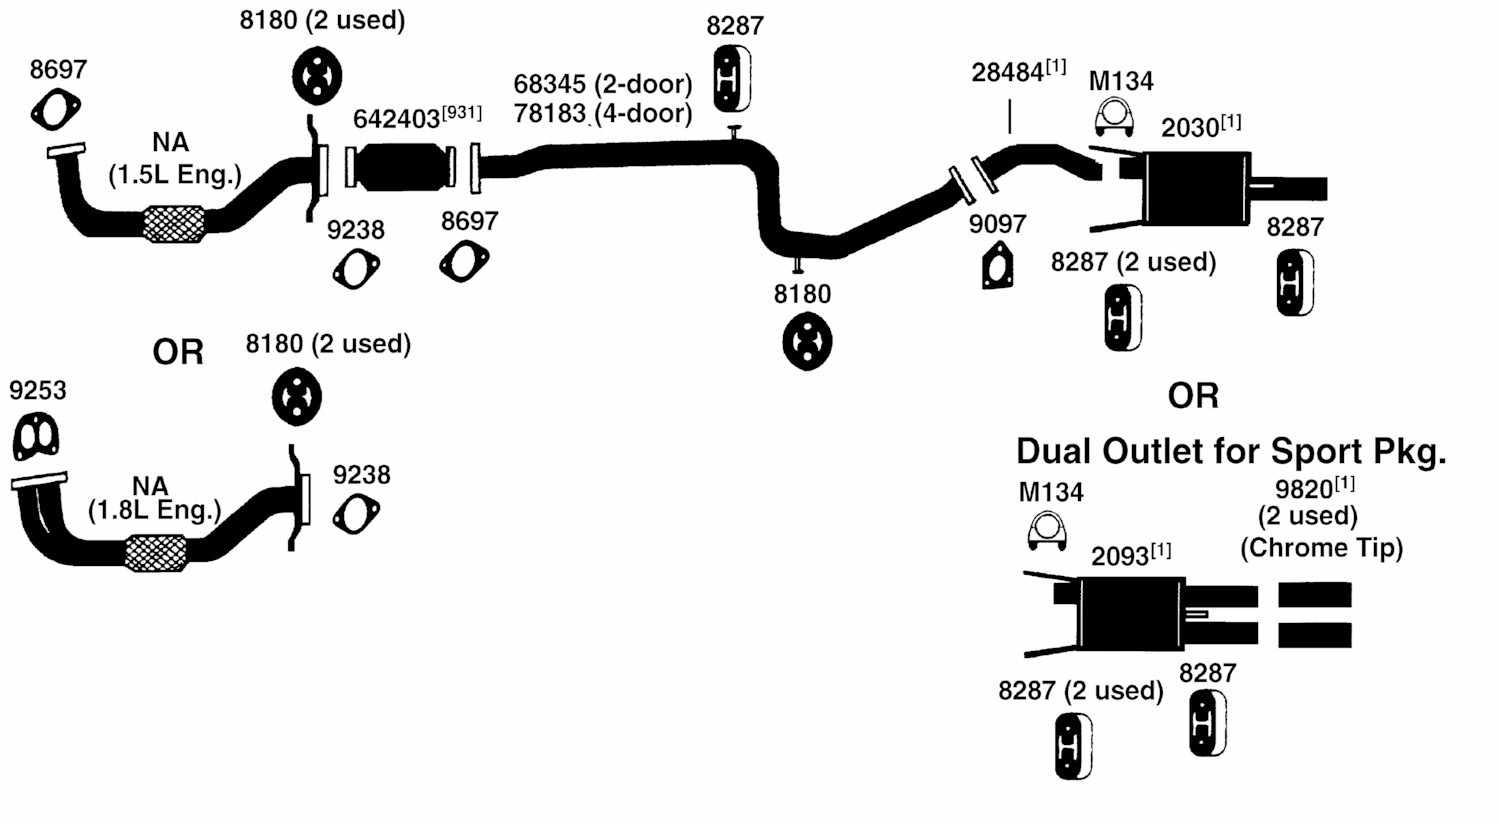 Wiring Diagram Database: 2005 Chrysler 300 Serpentine Belt